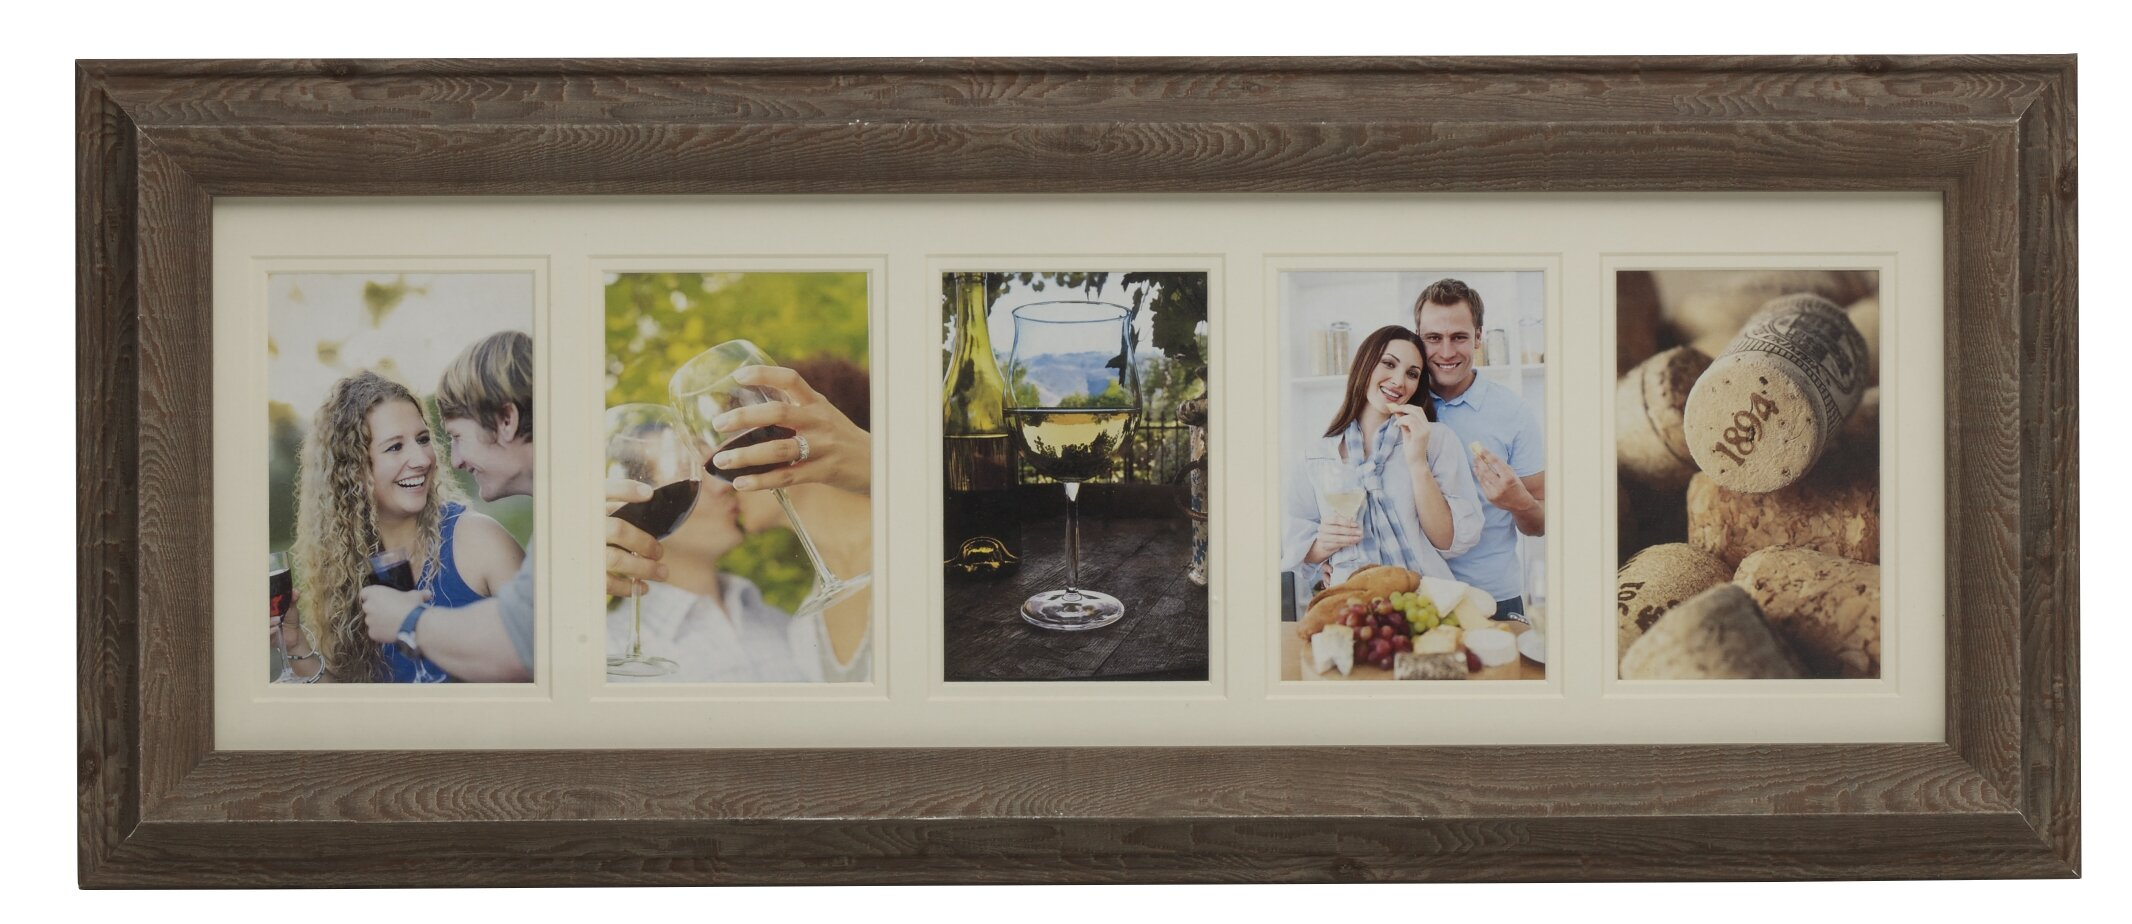 Melannco 5-Opening Plastic Collage Picture Frame & Reviews | Wayfair